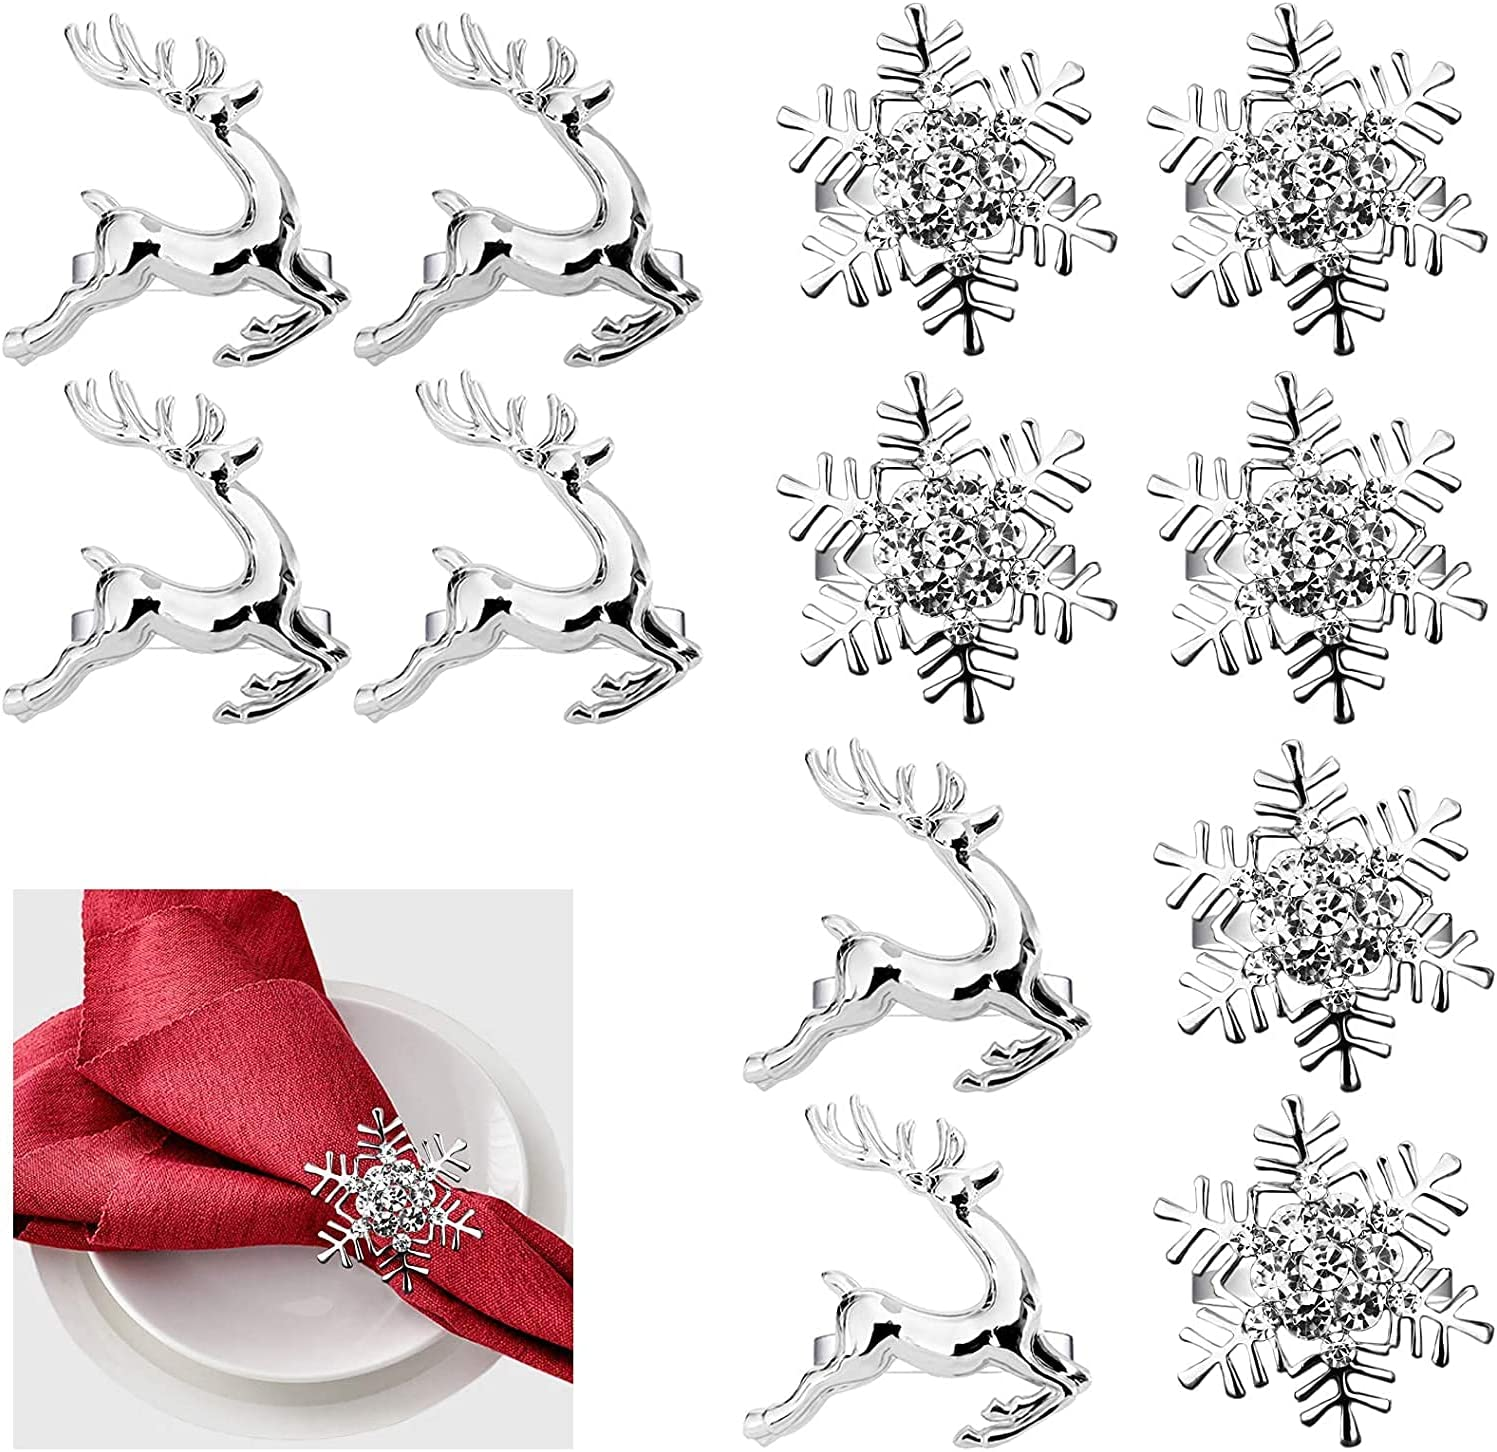 JIAOXIAOHUI Set of Direct stock discount 12 Napkin Rings Ring Elk Large-scale sale an Deer -